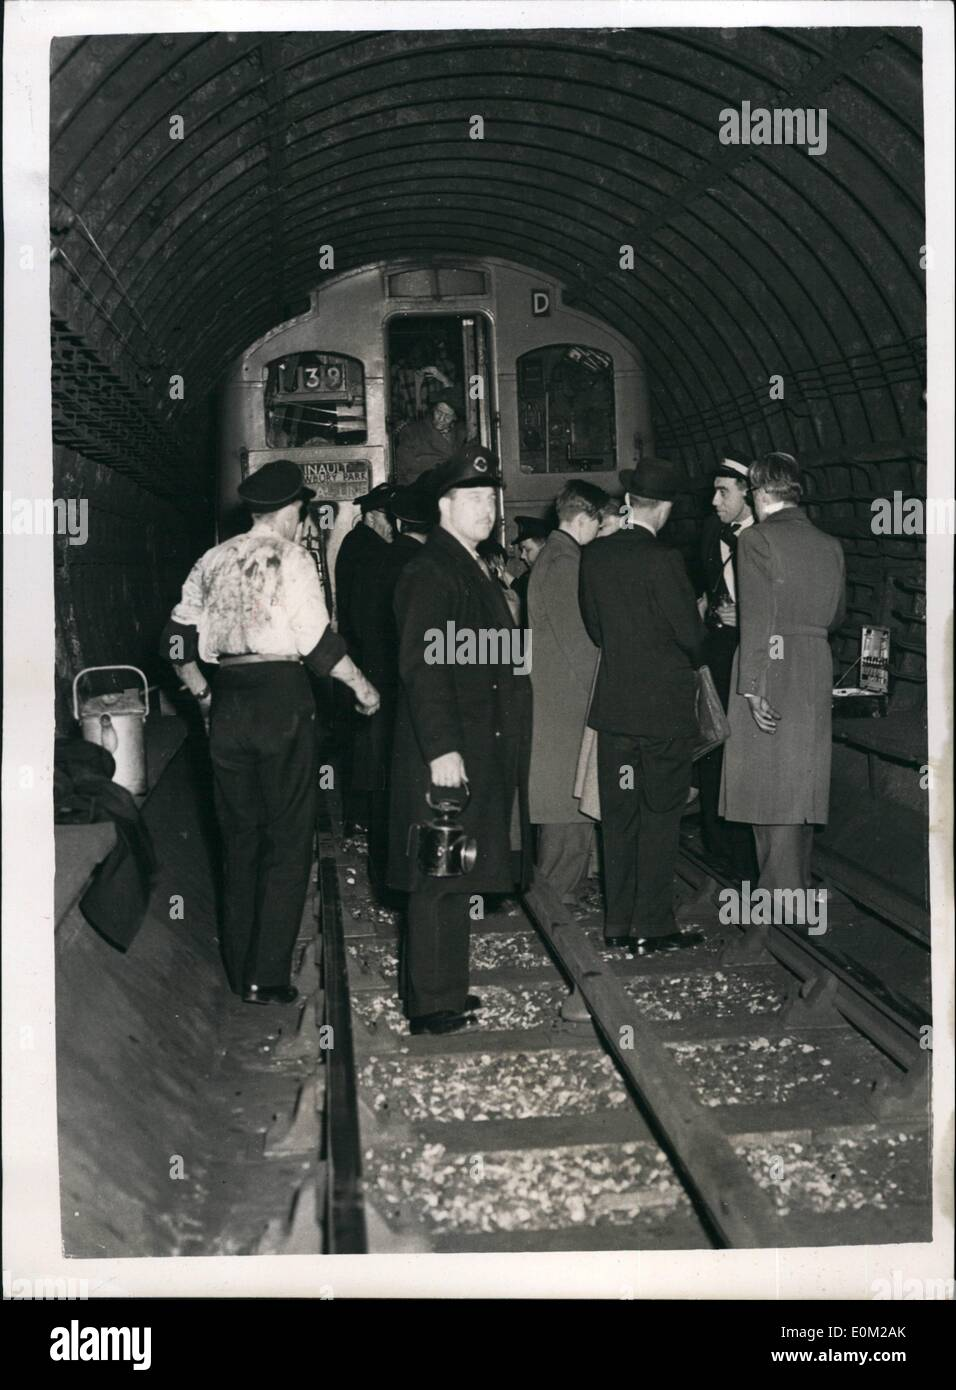 Apr. 04, 1953 - NINE DEAD IN TUBE DISASTER. Nine people were known today to have died in the General Line tube disaster at Stratford last night - the worst in London's Underground history. It was the second coach of the Esling Broadway-Epping train which took the brunt of the crash. The train ran into the rear of the another train travelling from Greenford to Heinault. Keystone Photo Shows:- Last night's scene as railway officials help passengers from the rear of one of the coaches after the crash at Stratford - Stock Image